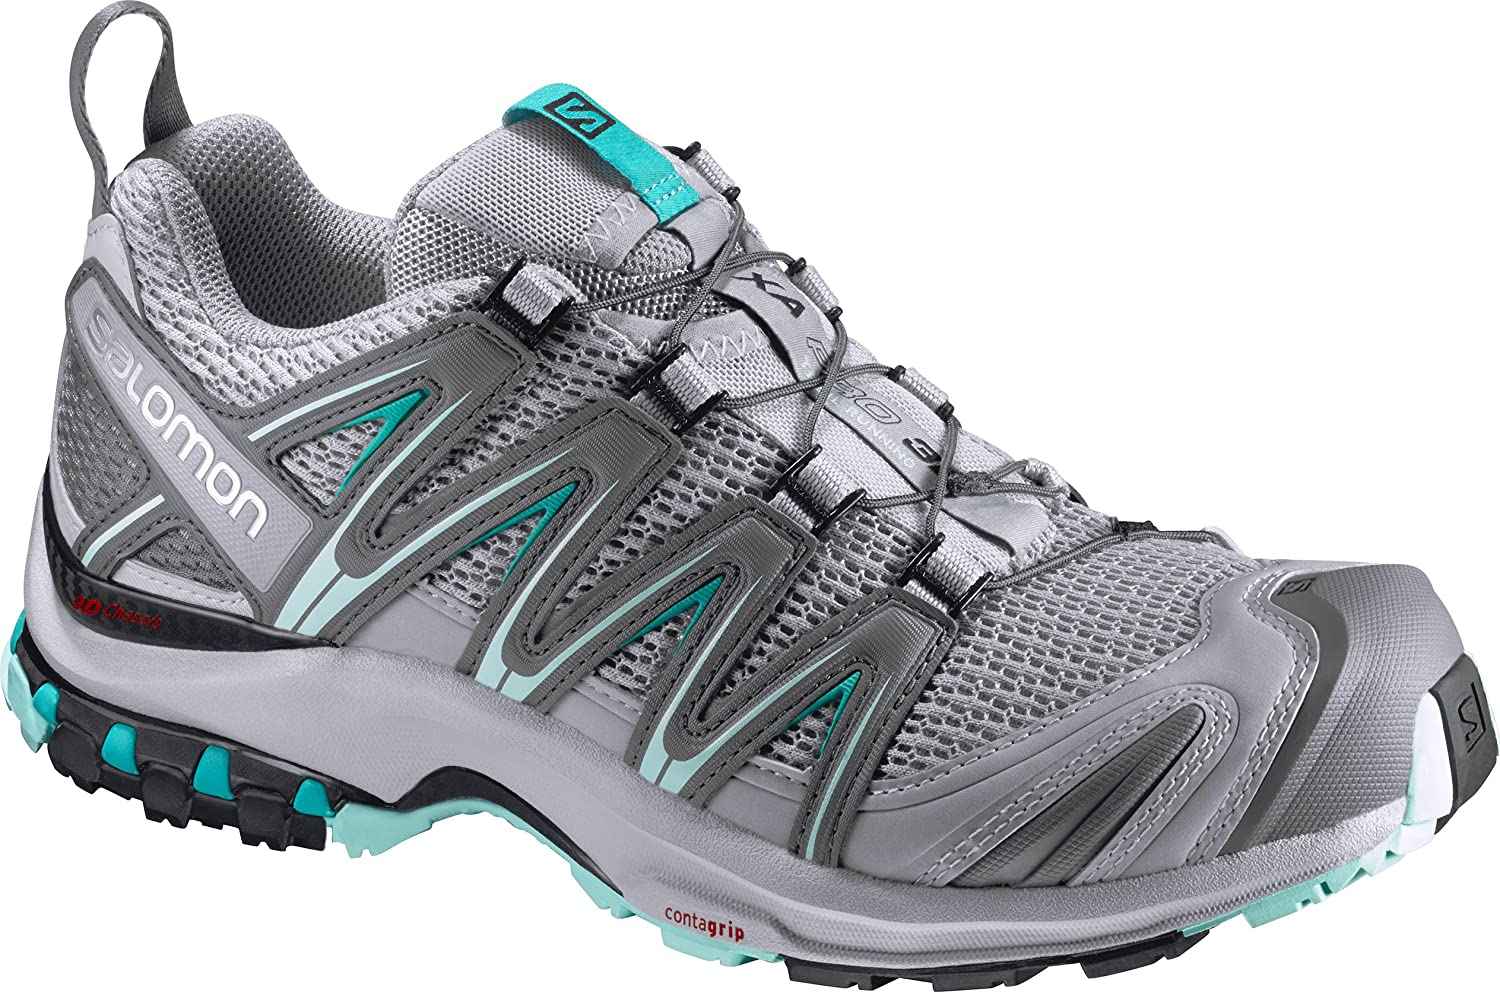 Salomon Women's Xa Pro 3D W Trail Runner B01HD2P5M0 9 B(M) US|Quarry